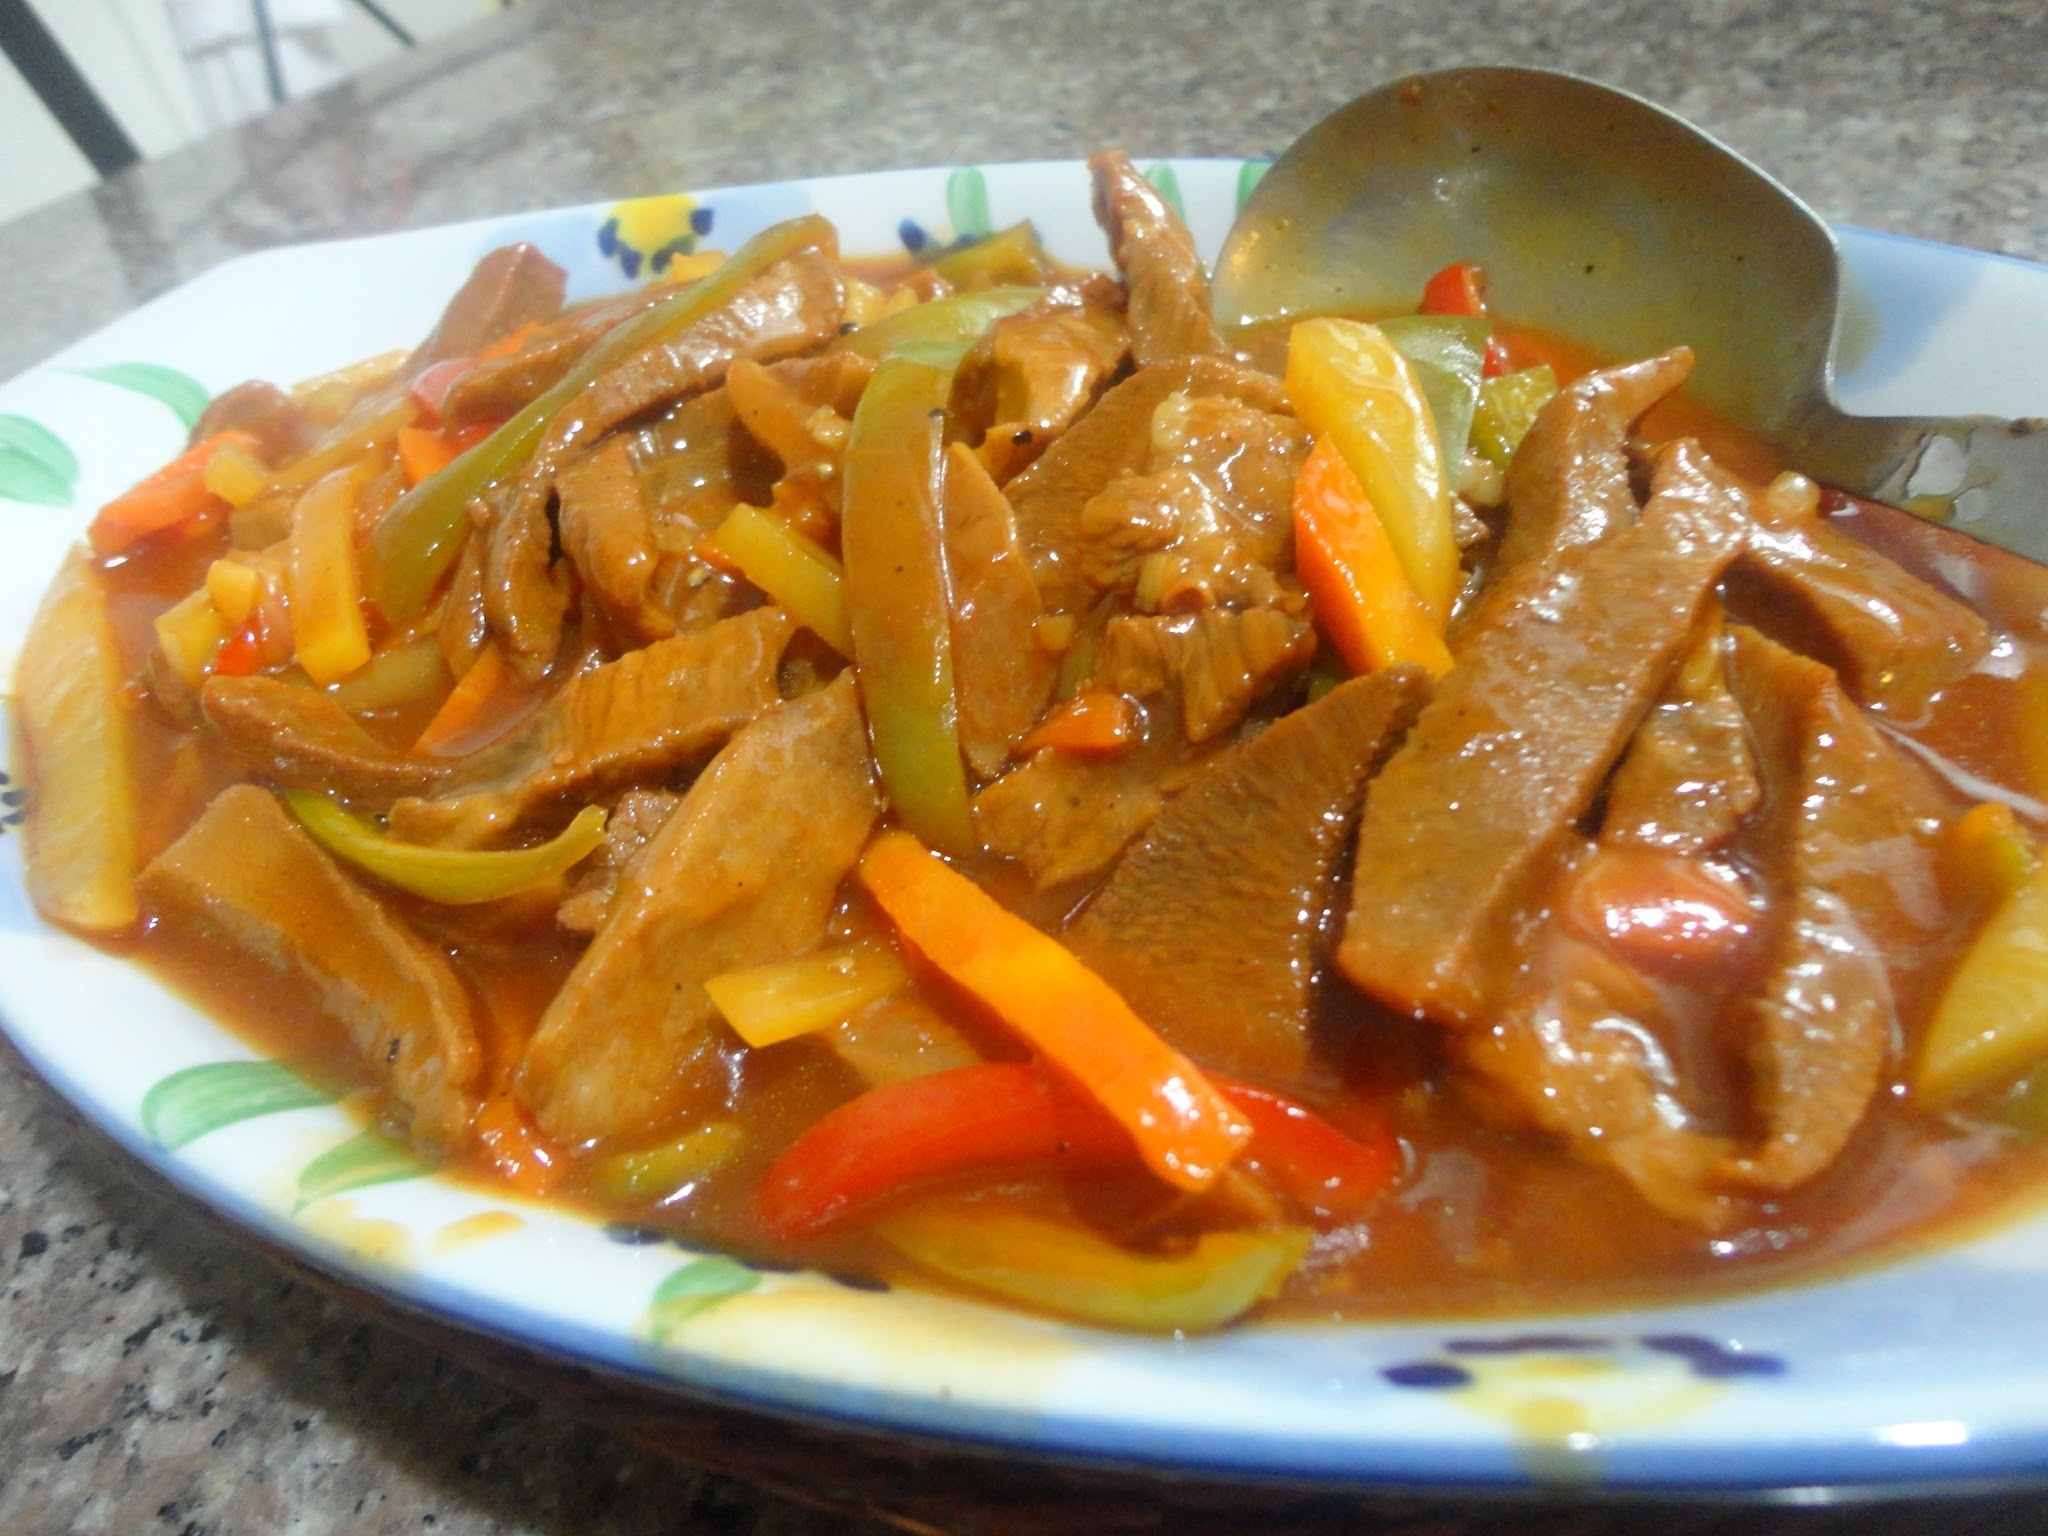 LENGUA CON SALSA (Ox tongue in Red Sauce)